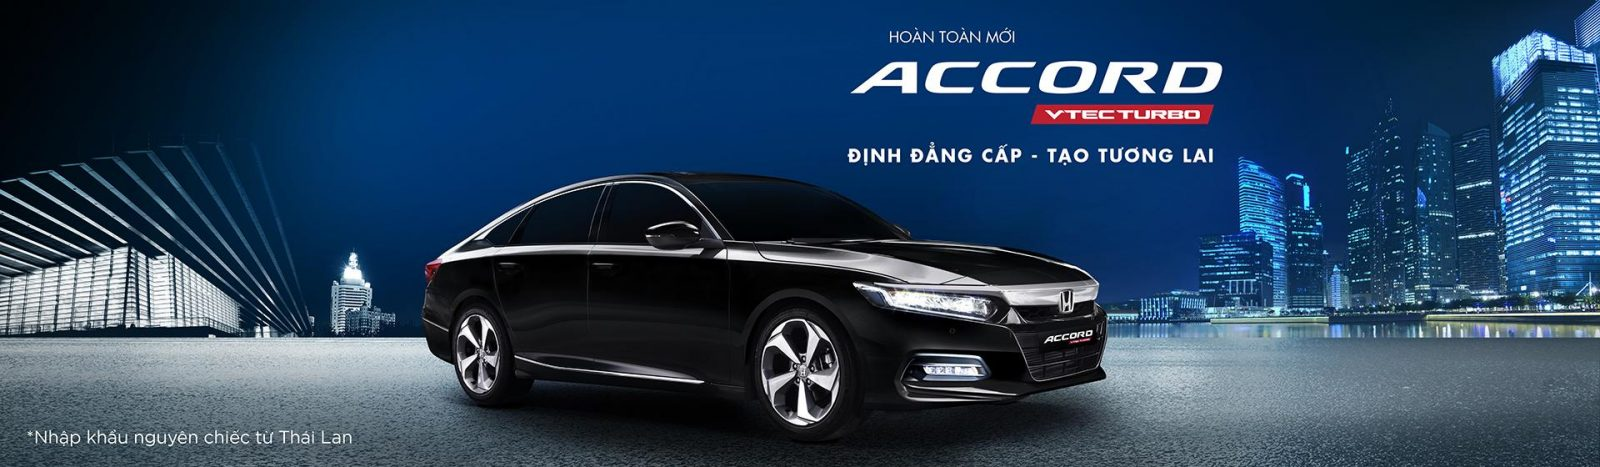 Banner Accord HVN